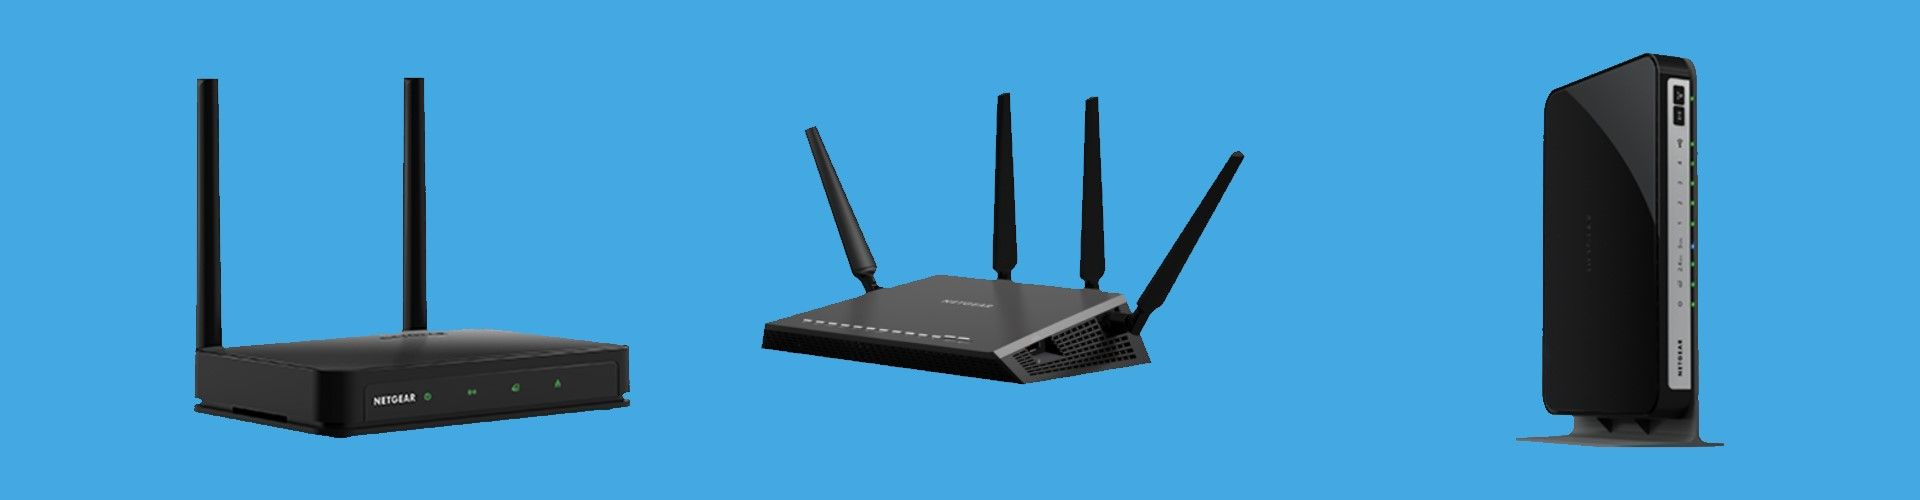 The Netgear routers provide you with beamforming technology